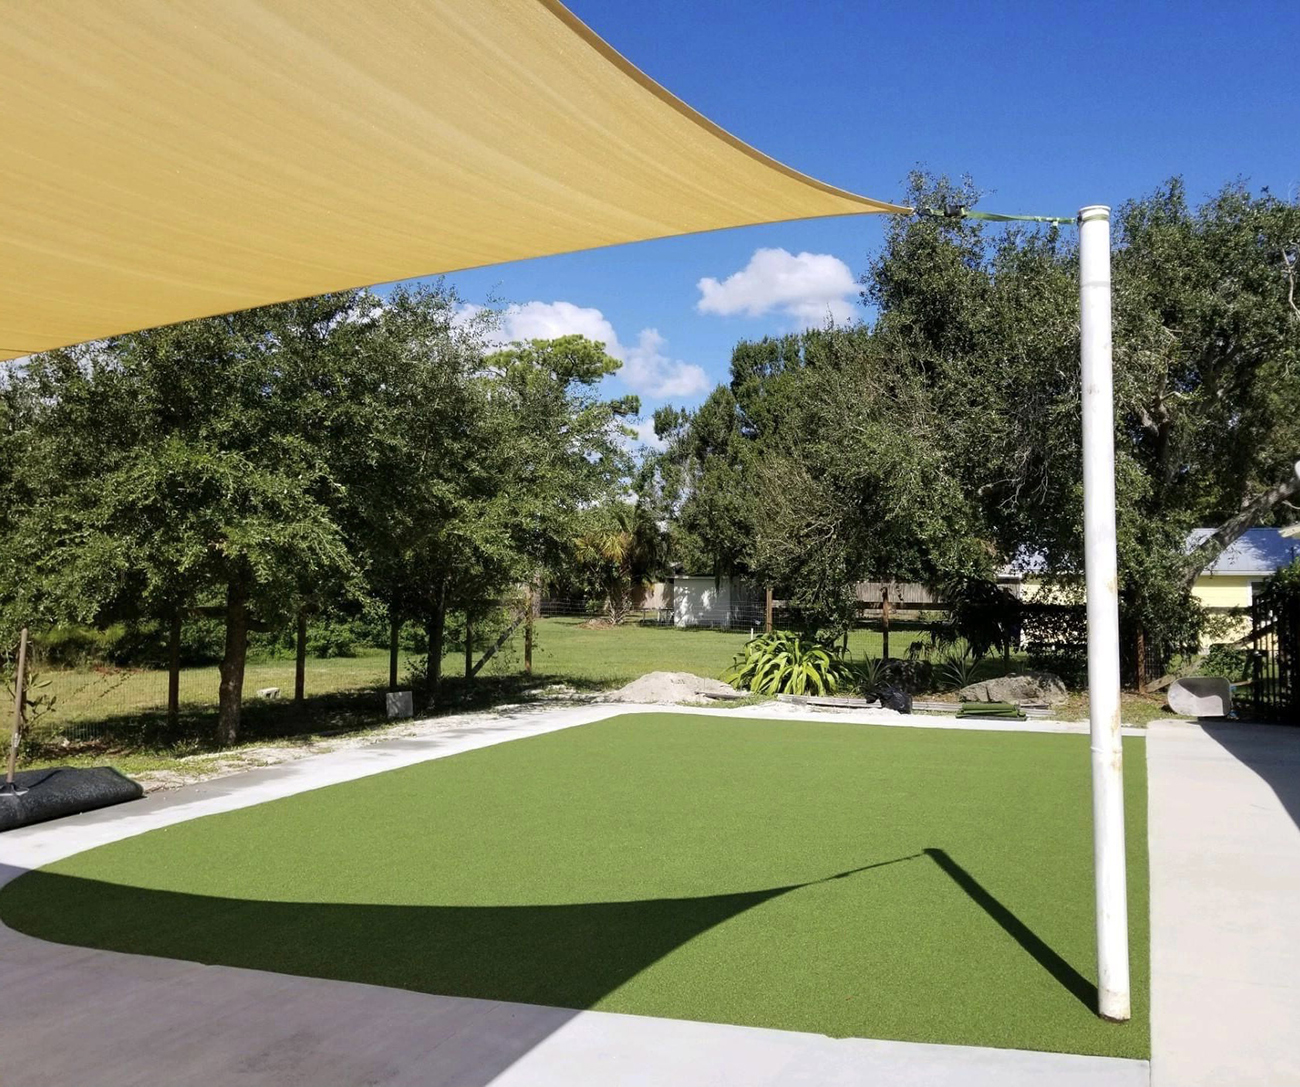 Central Coast Artificial Turf Co synthetic grass for lawn